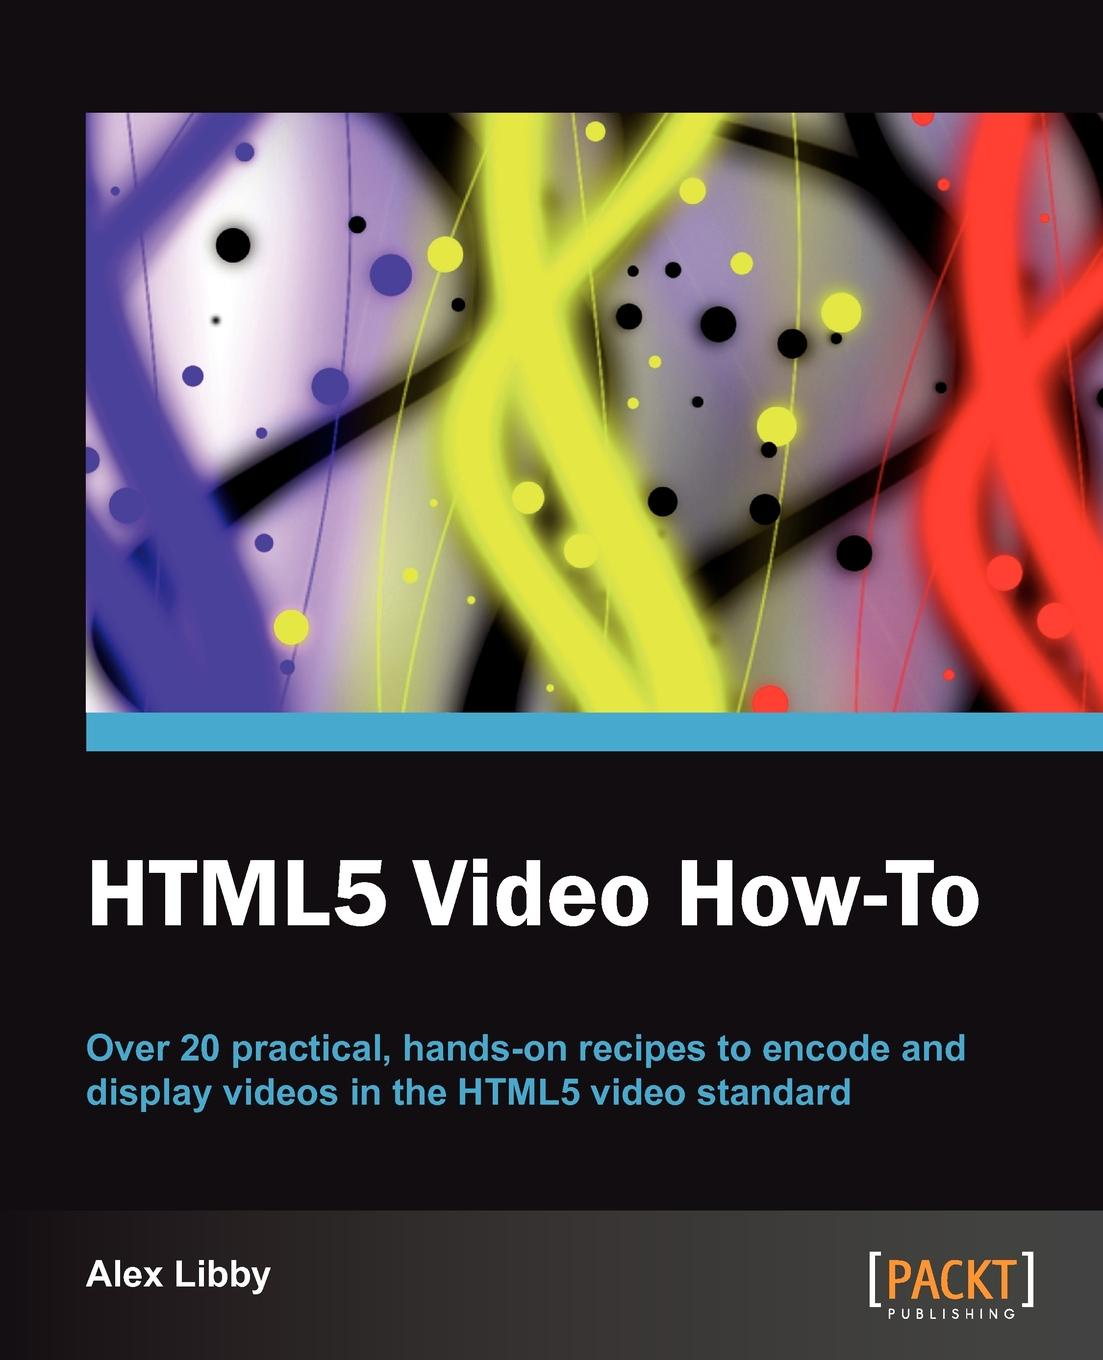 Alex Libby Html5 Video How-To